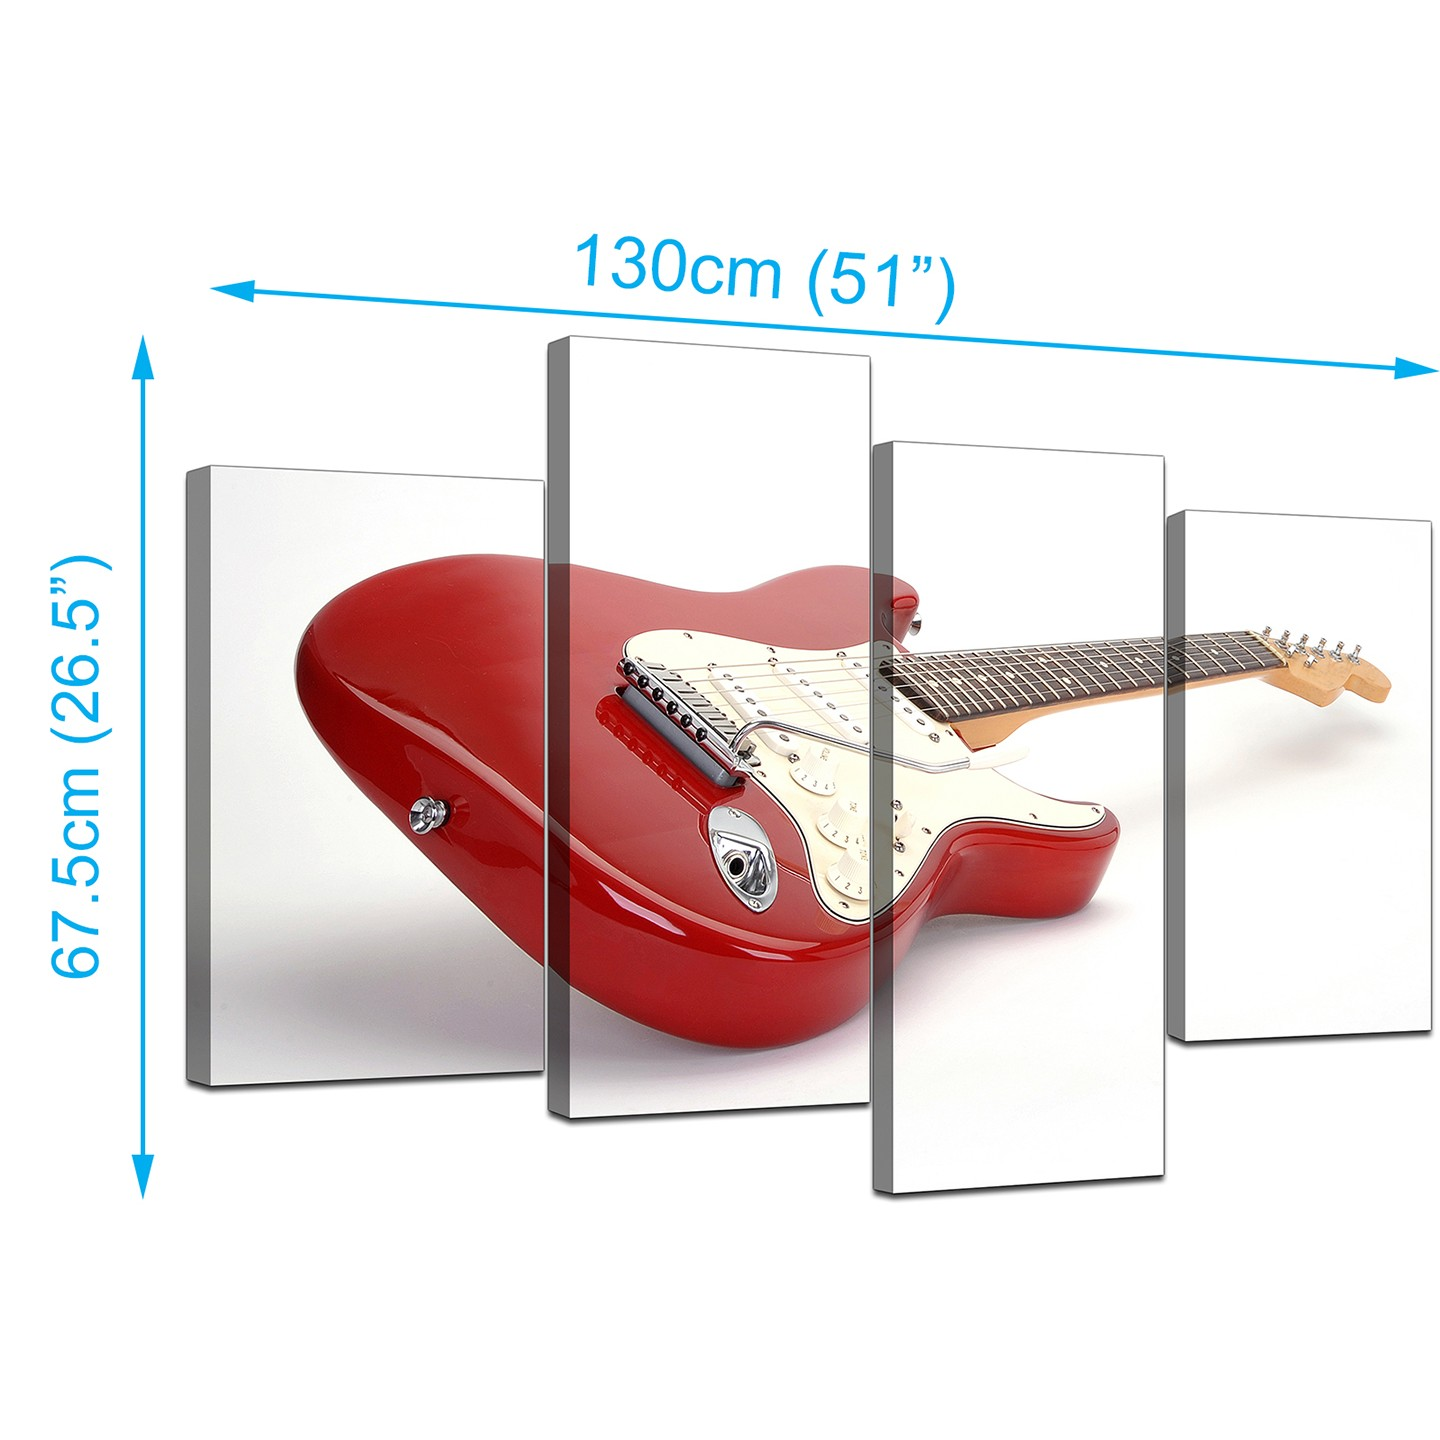 Electric Guitar Canvas Wall Art In Red For Bedroom Diagram Parts Of The Display Gallery Item 2 Set Four Modern Prints 3